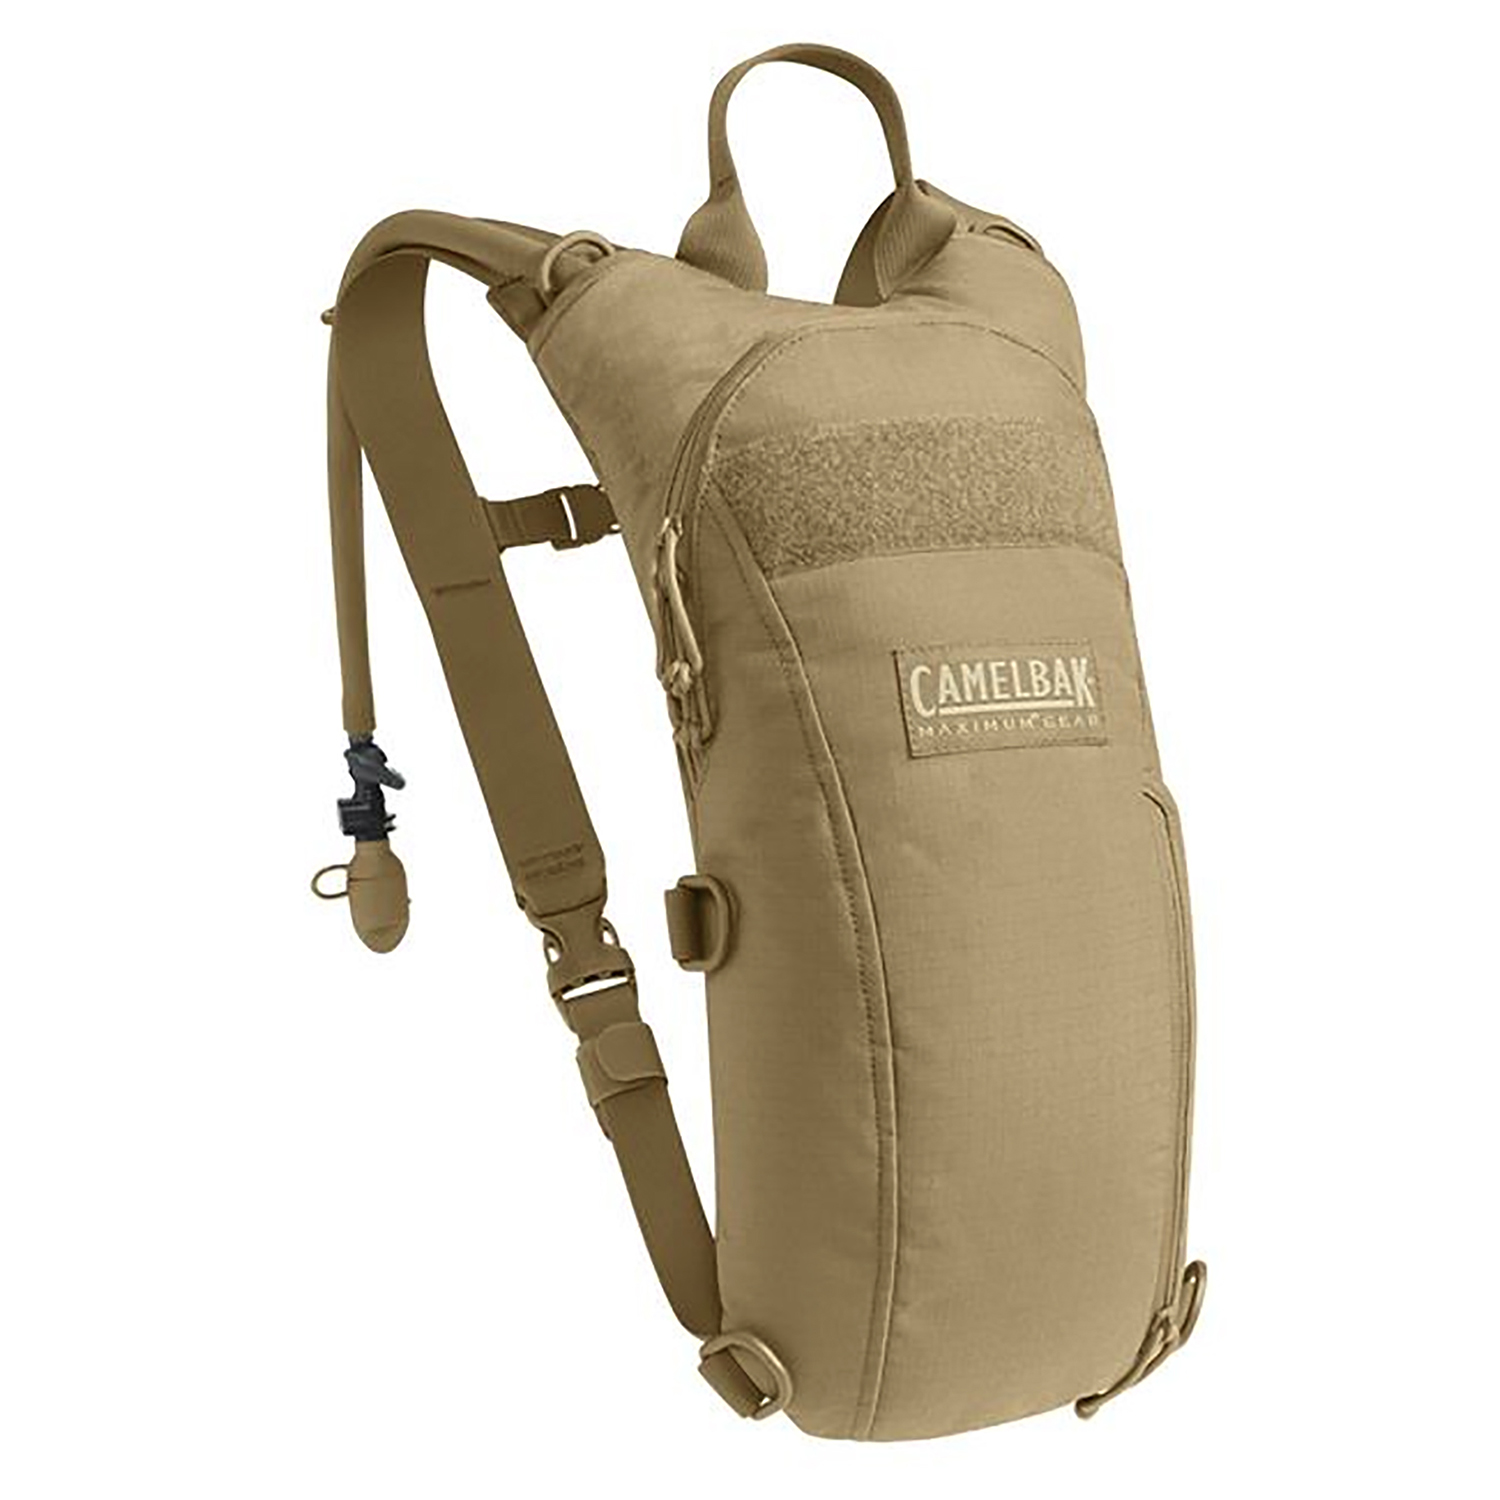 Camelbak ThermoBak 3L Hydration Carrier